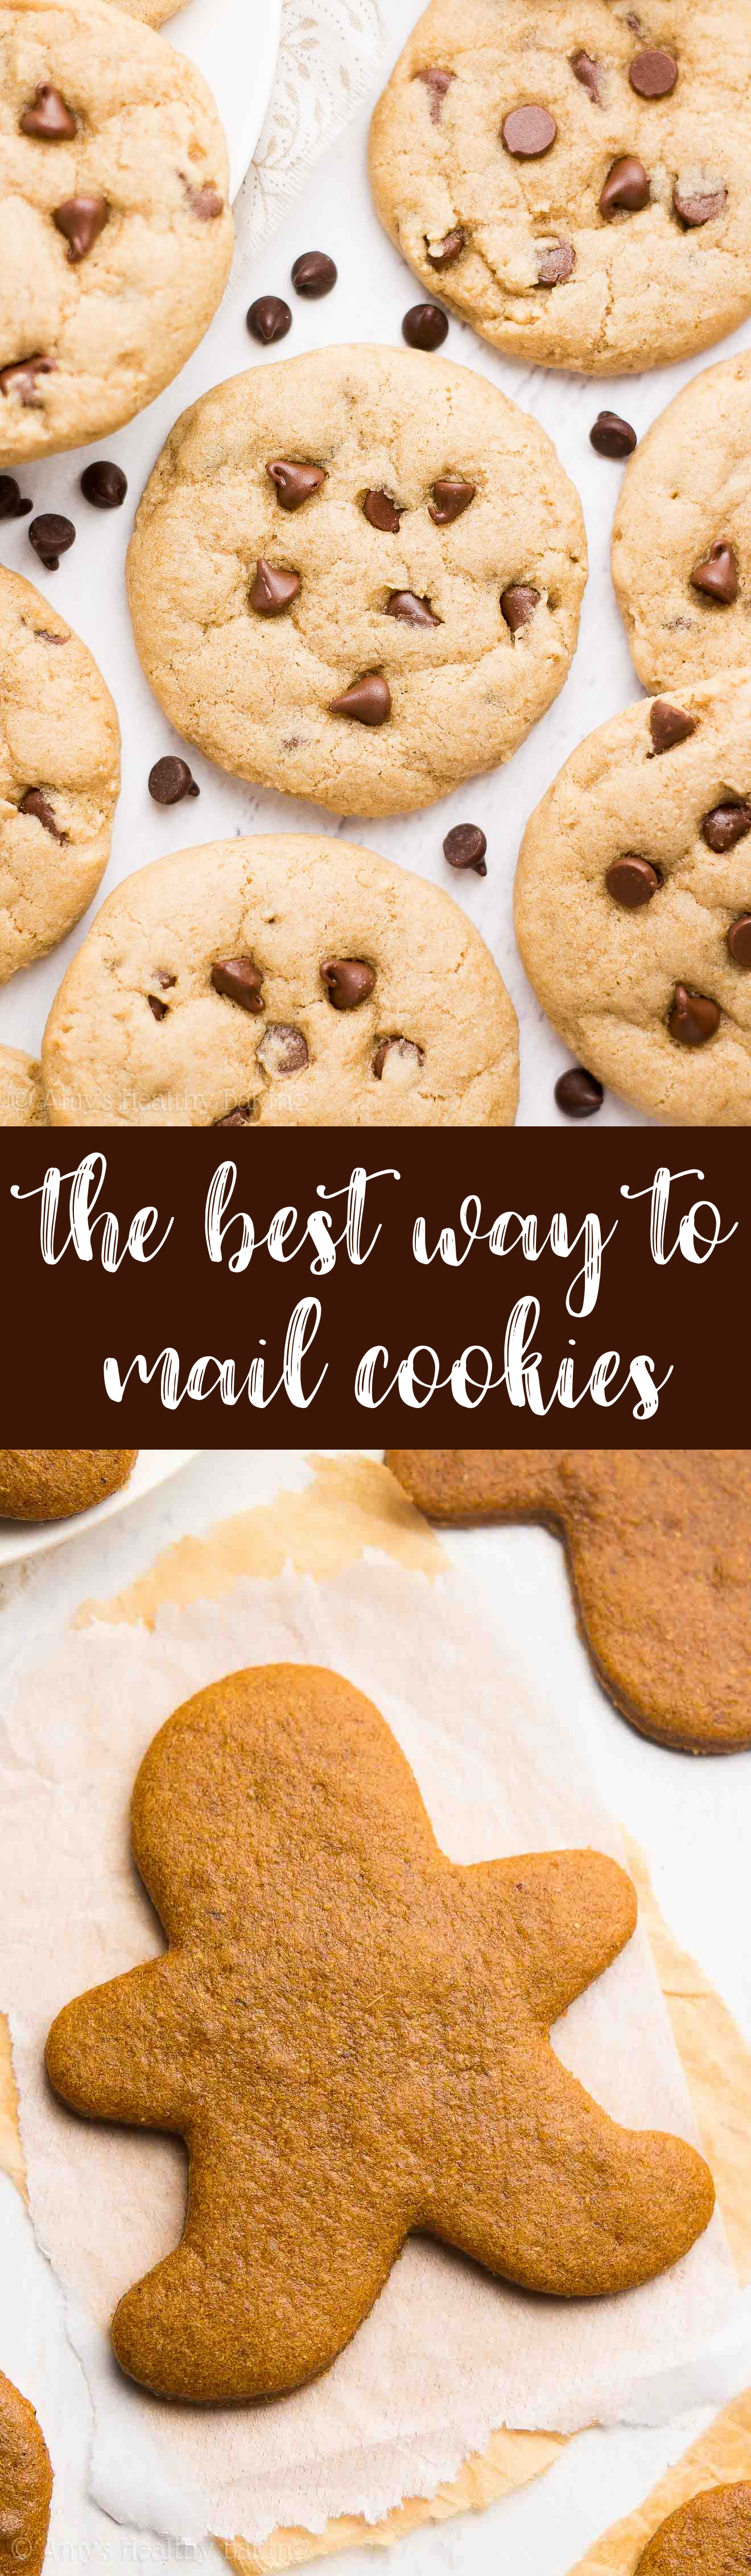 The BEST Way to Mail Cookies! This method is SO simple & just uses 3 everyday items! No special shipping materials required -- and no broken, crumbling or stale cookies! My cookies ALWAYS arrive perfectly with these amazing tips!